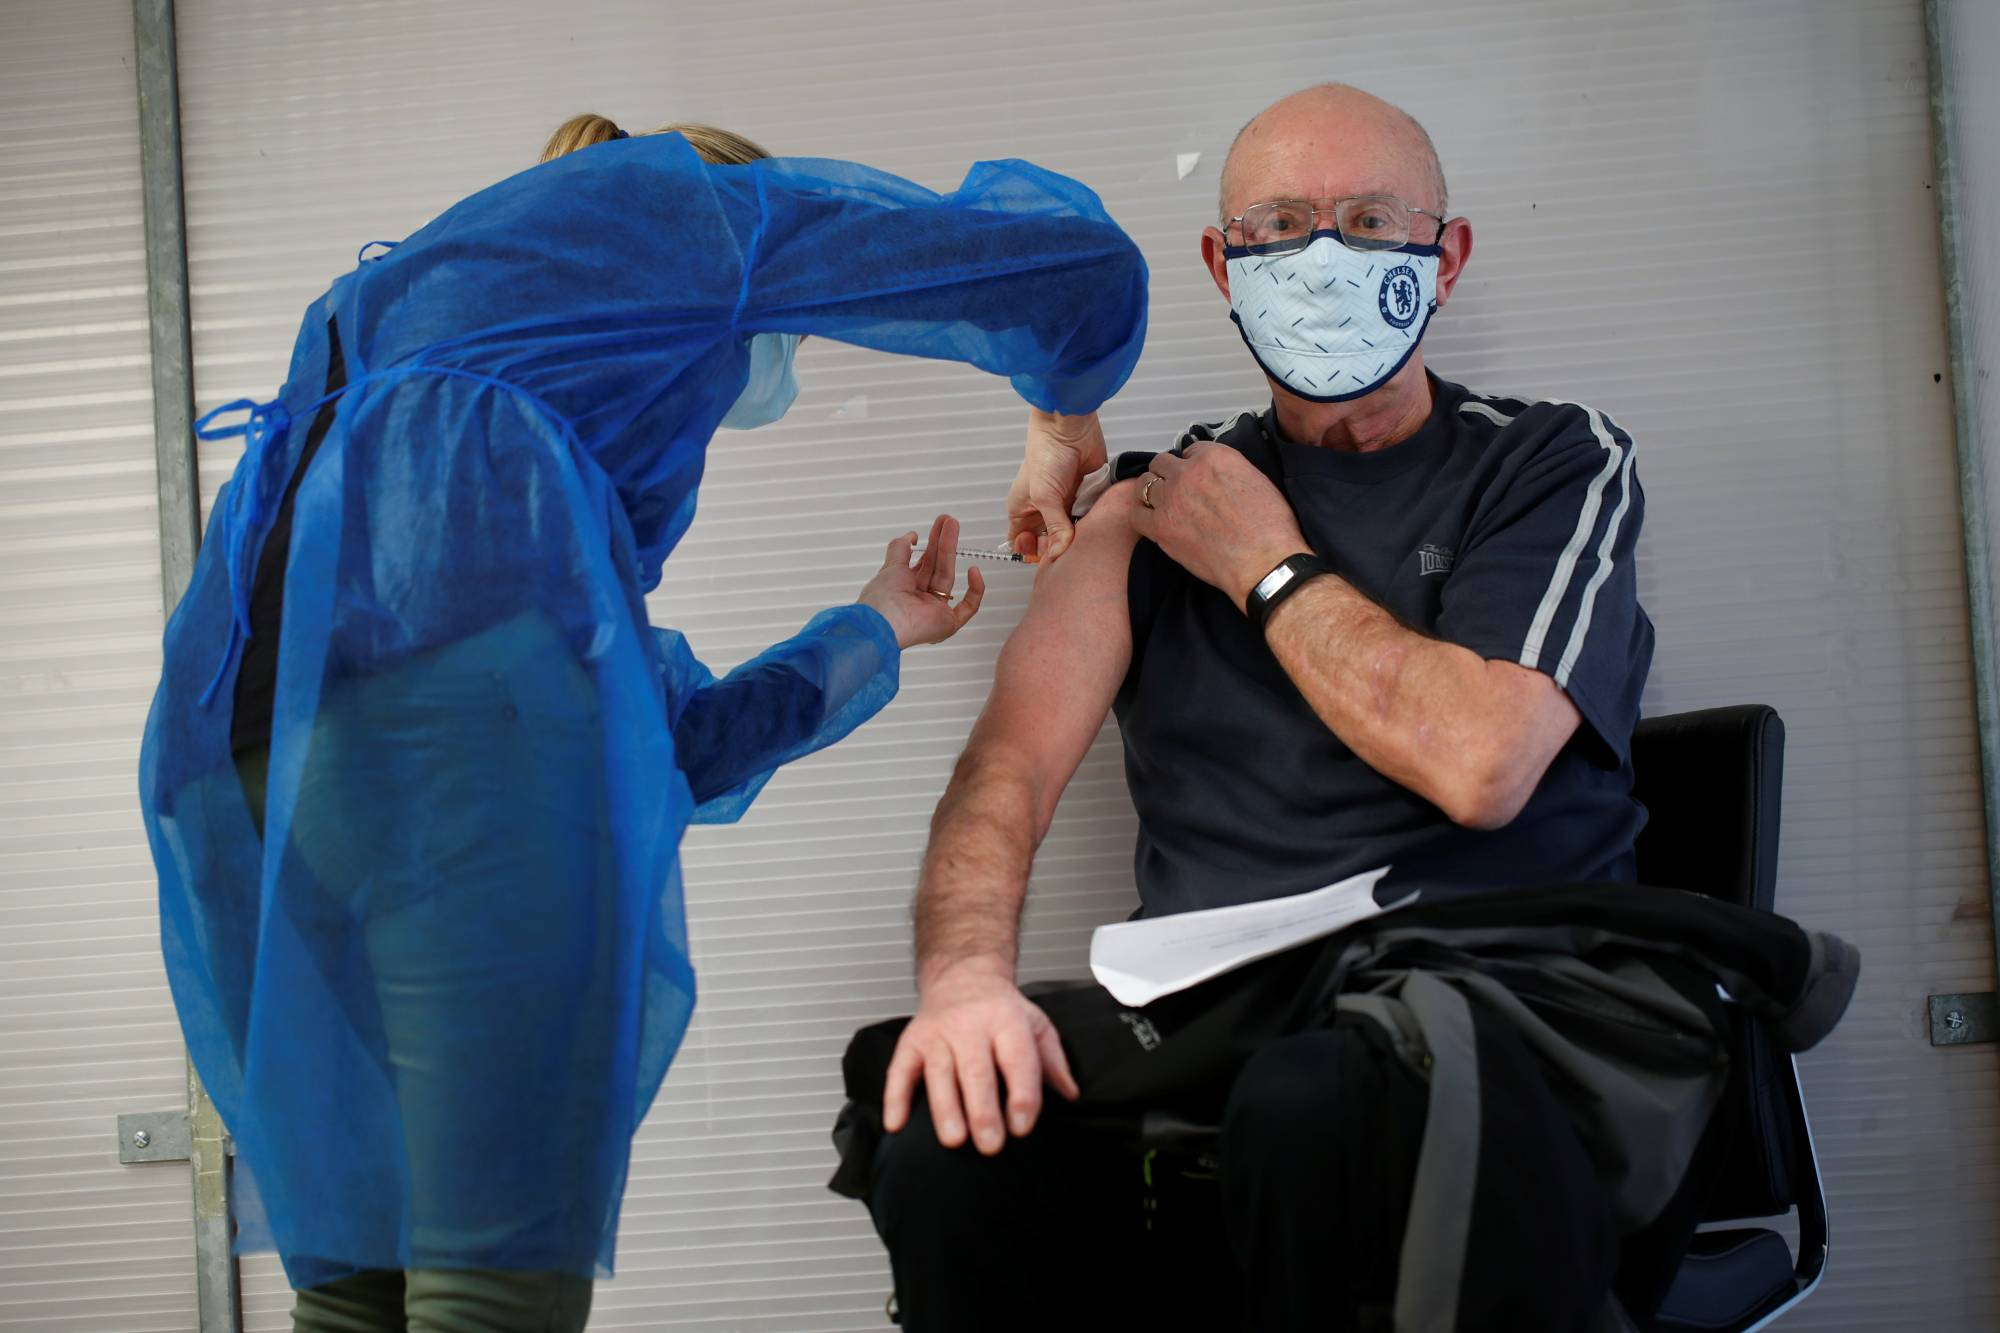 An elderly man  receives a dose of the Pfizer-BioNTech COVID-19 vaccine at a vaccination center in Guingamp, France, on Friday.  | REUTERS